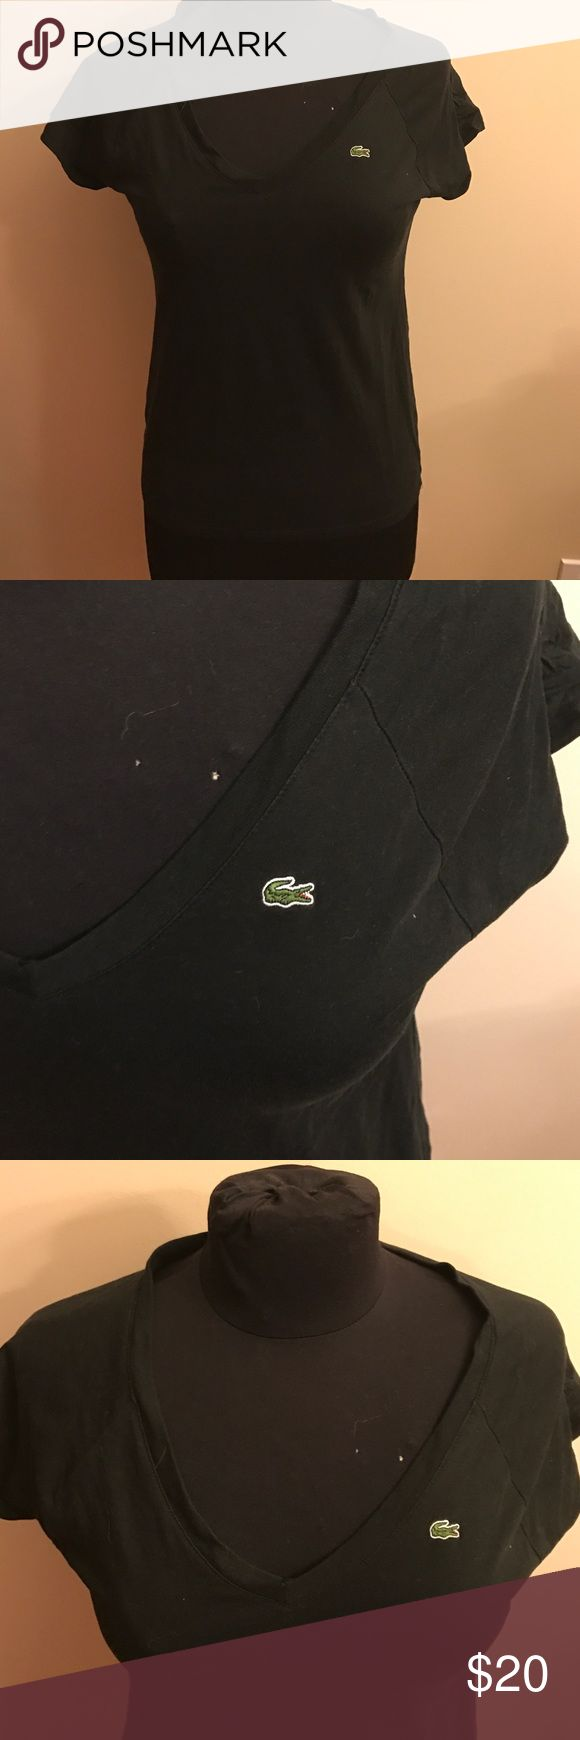 2/$20 sale! Lacoste V-neck tee Black V-neck tee shirt. Size 36 which is equivalent to a size 4. Lacoste Tops Tees - Long Sleeve